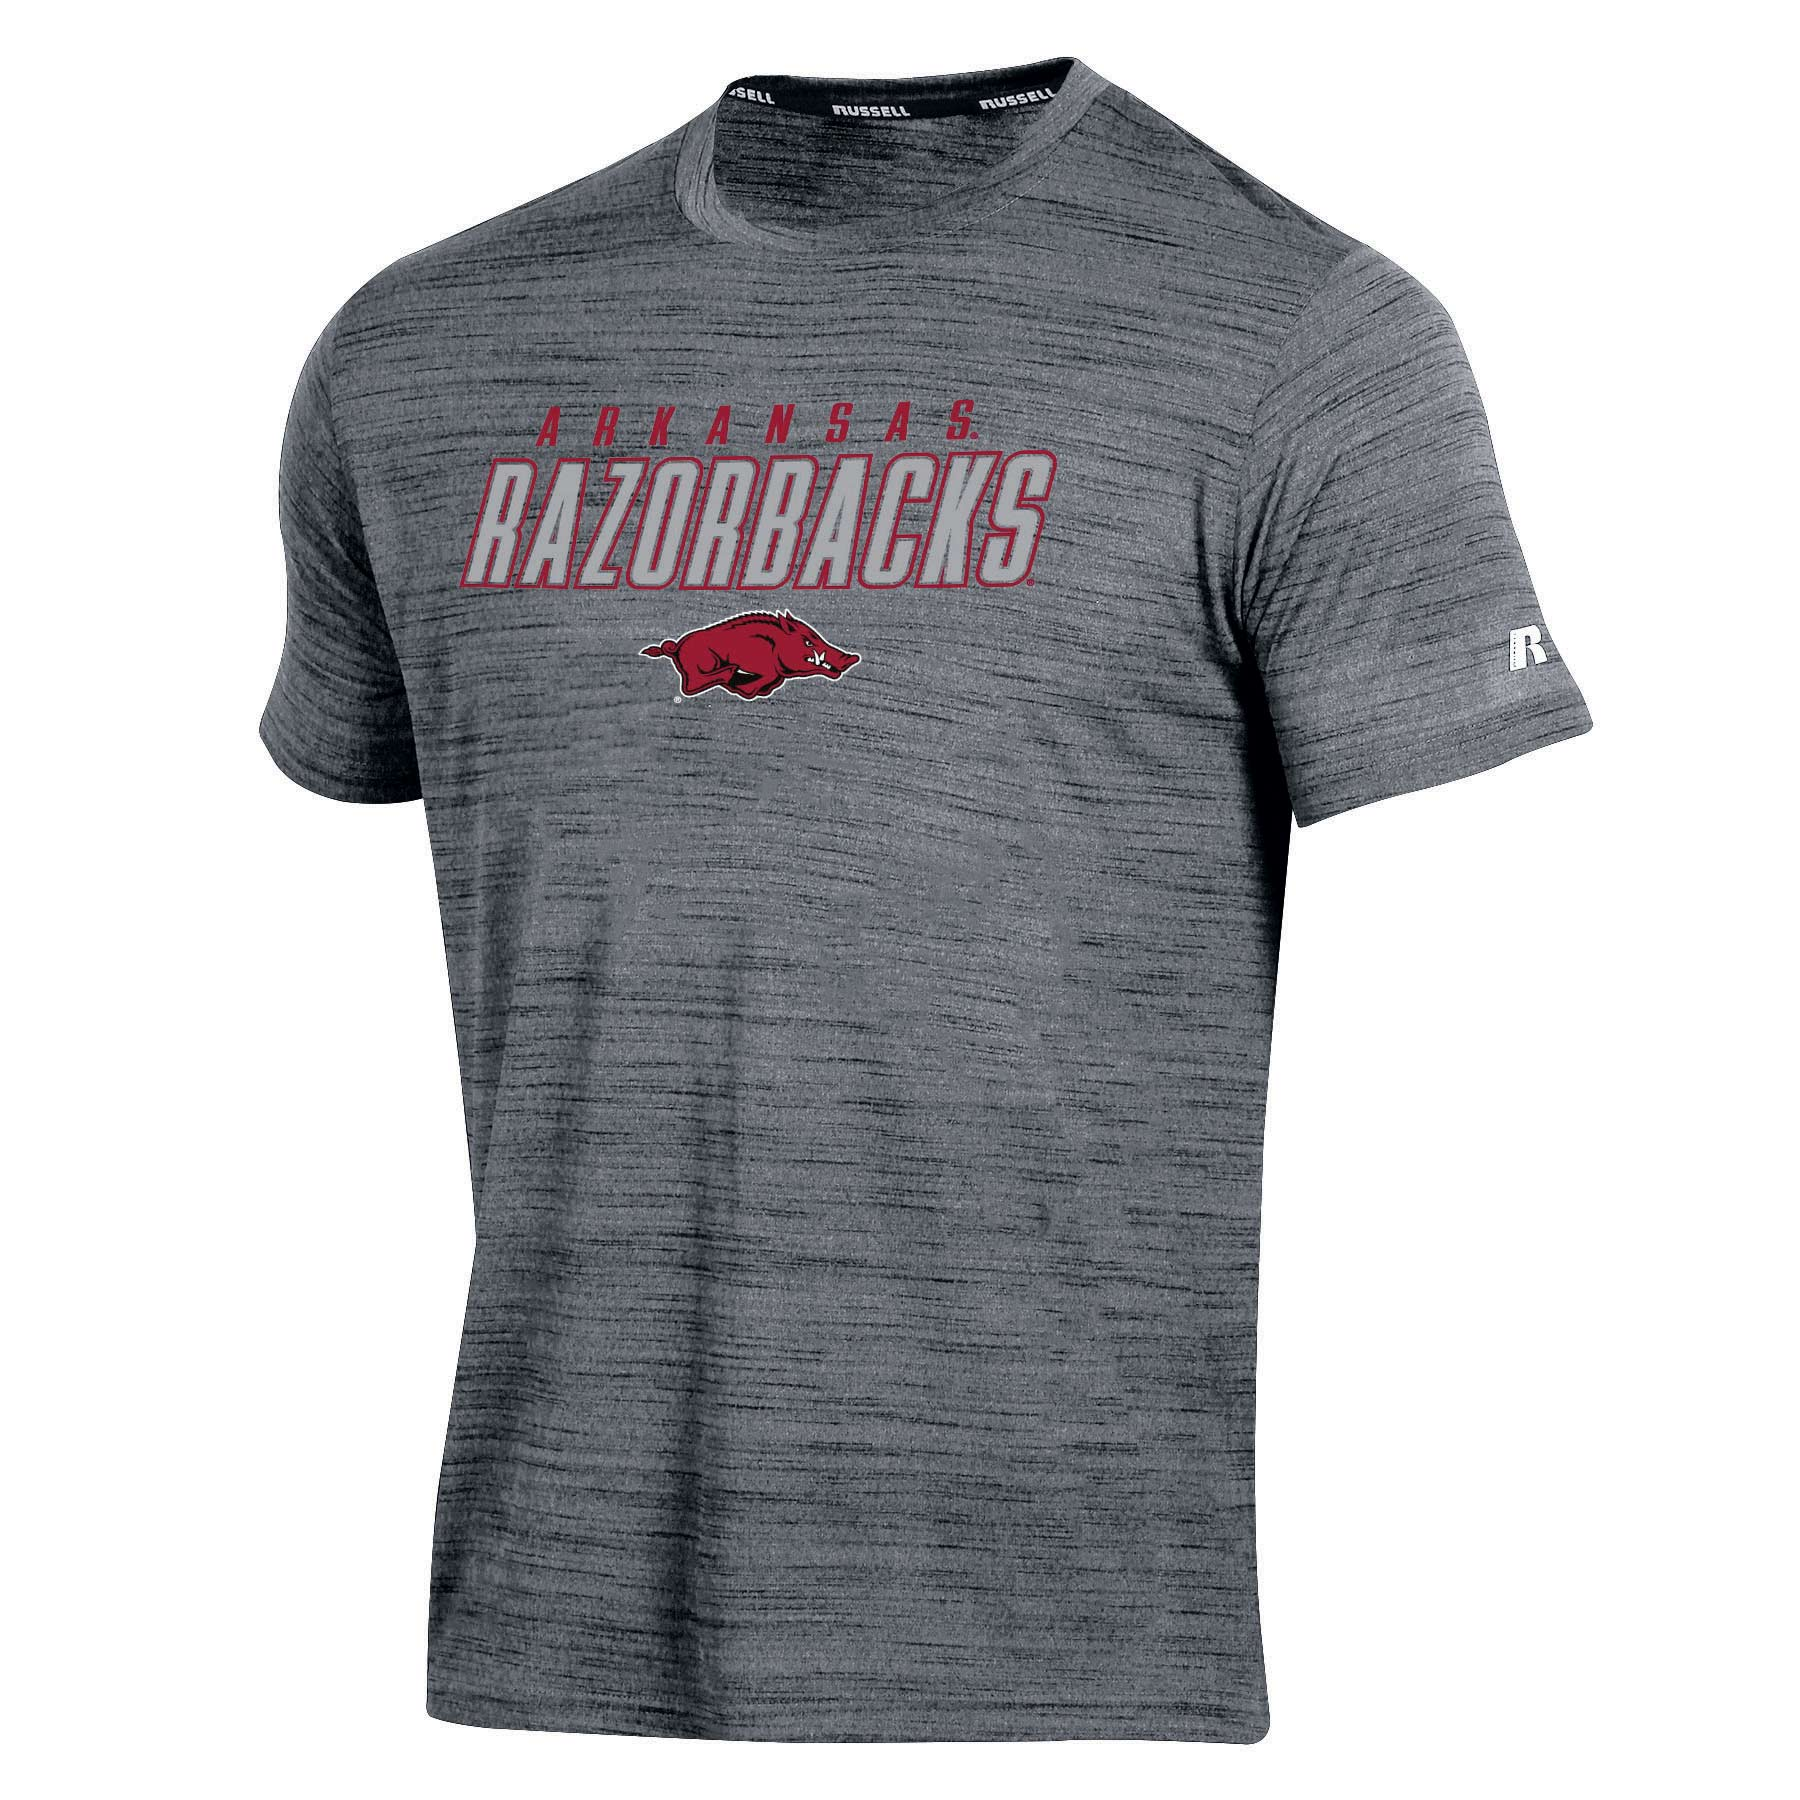 Men's Russell Gray Arkansas Razorbacks Metallic Big & Tall T-Shirt